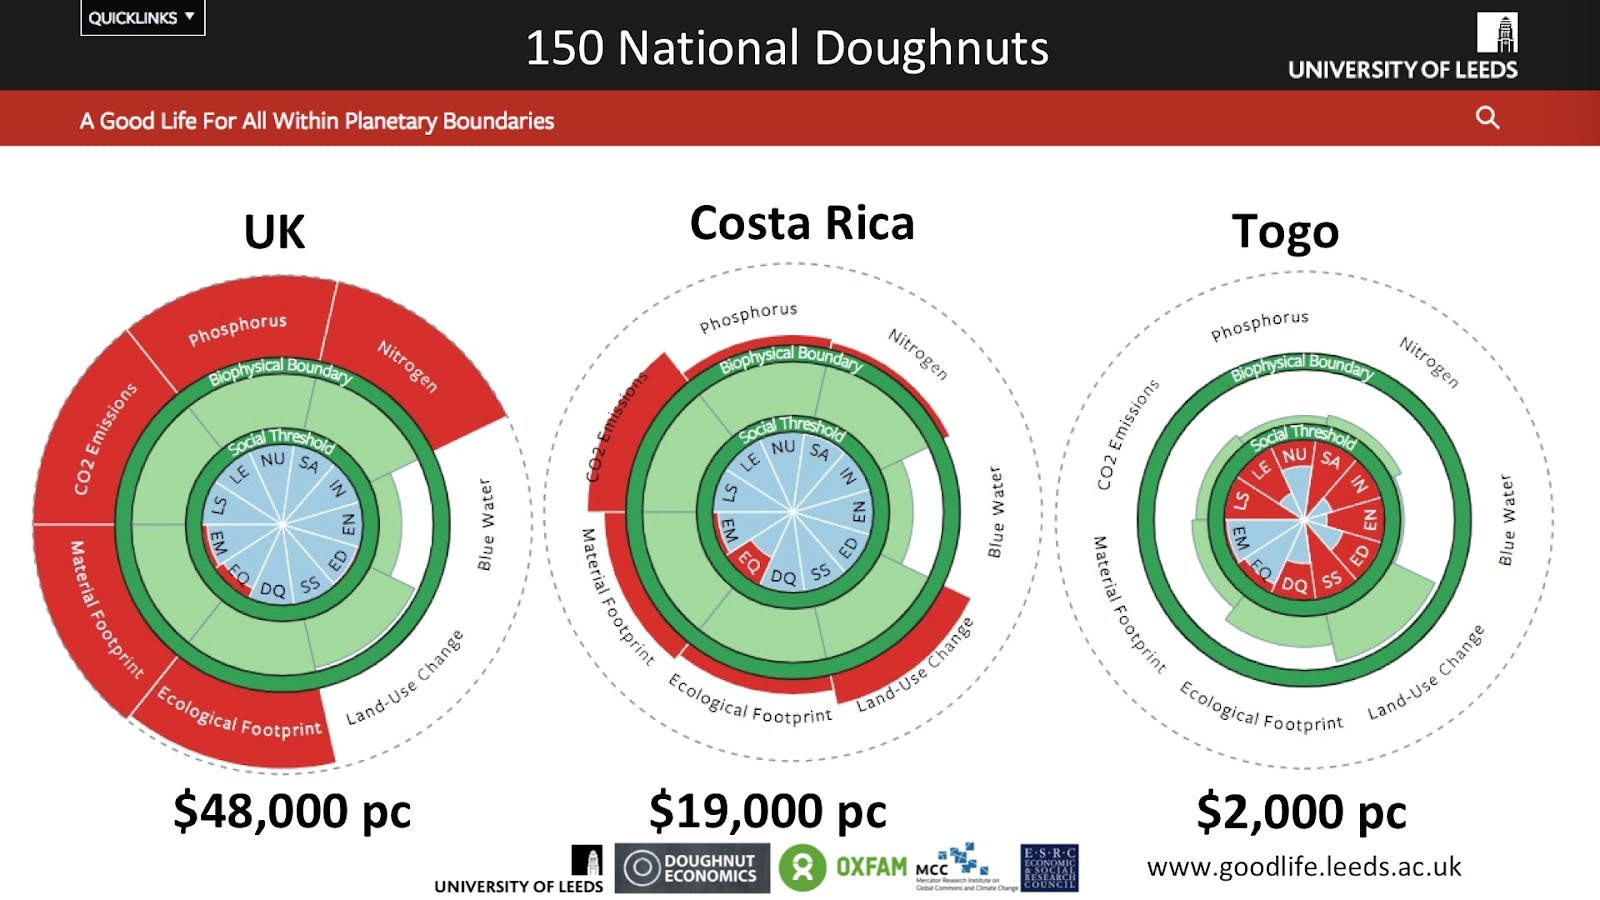 Examples of doughtnut graphs for the UK, Costa Rica and Togo